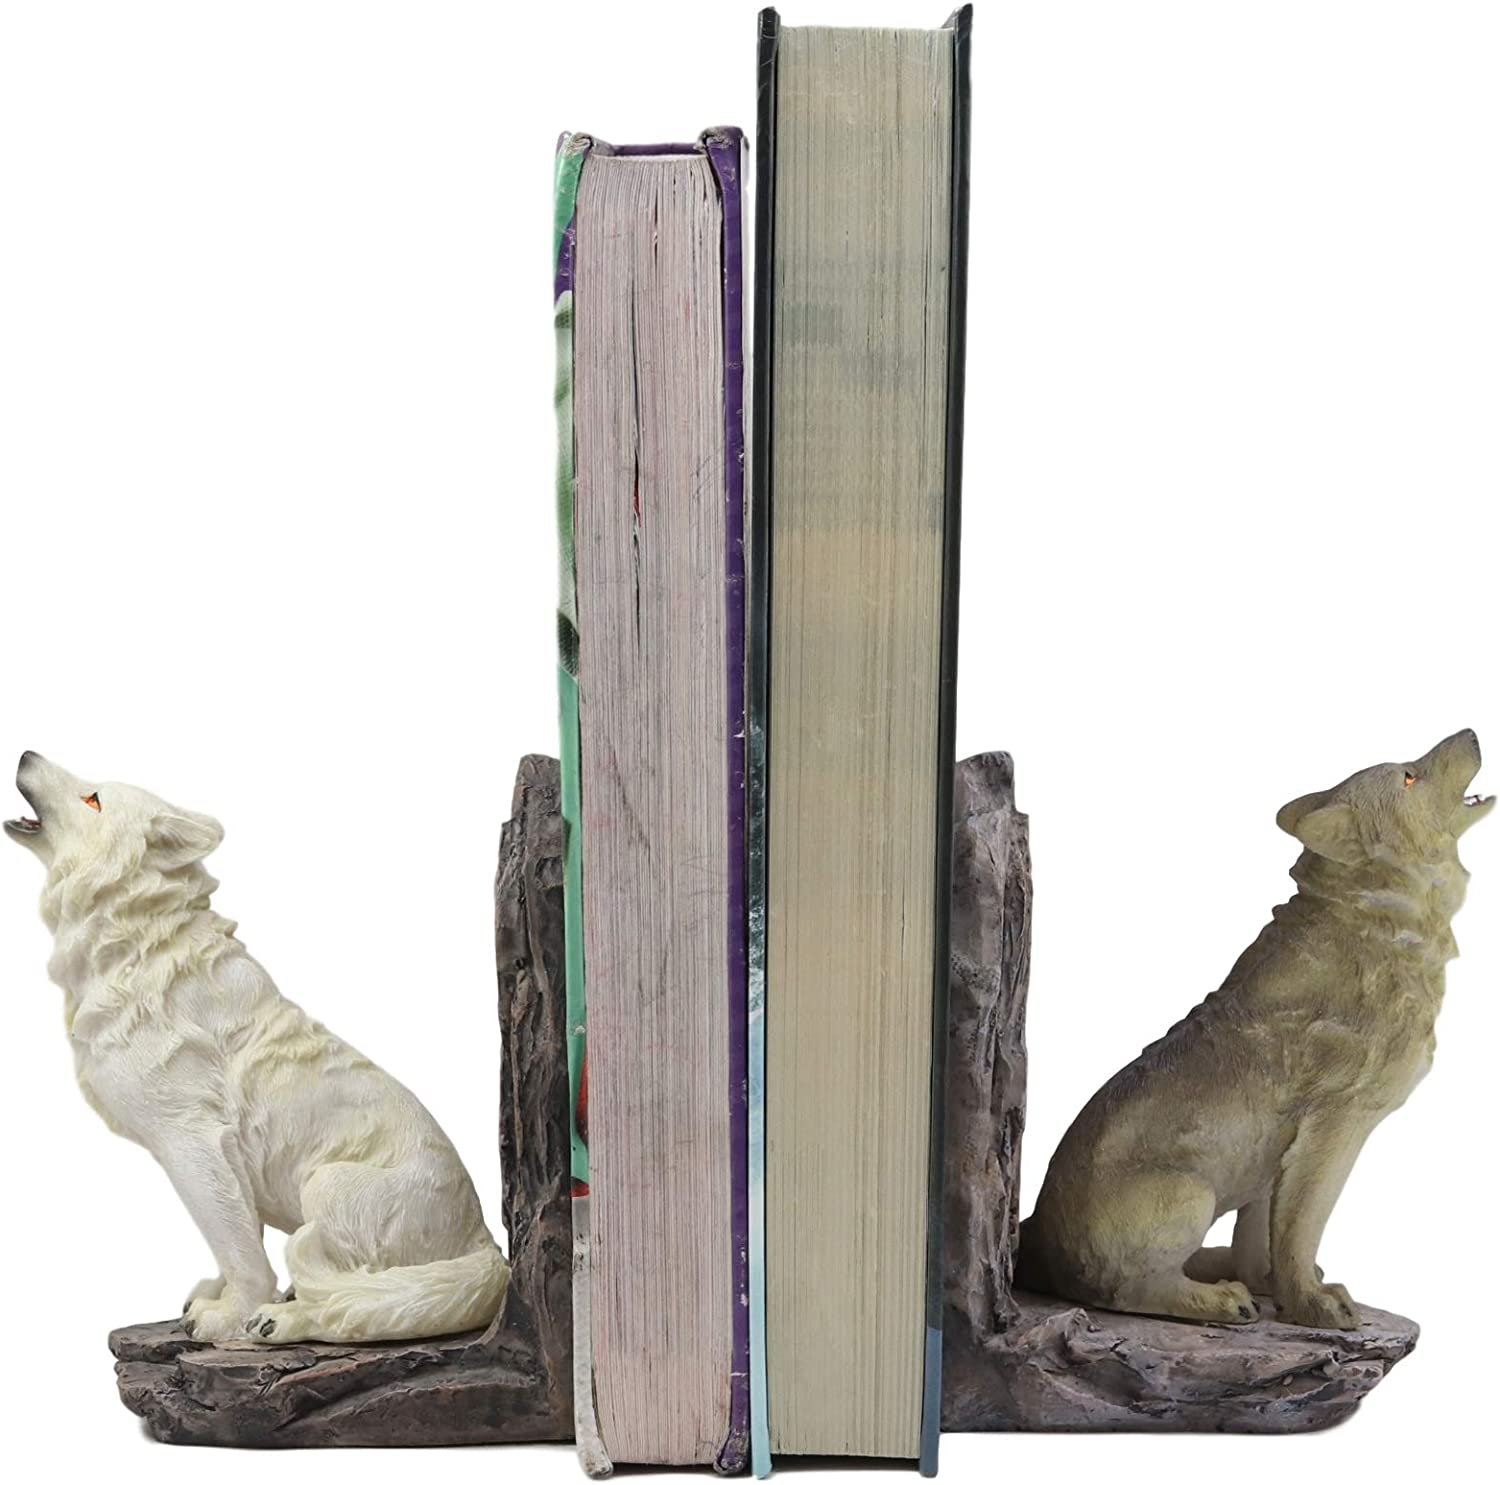 """Ebros Animal Totem Spirit Howling Gray And Snow Wolves Decorative Small Bookends Figurine Set 5.5""""Tall As Timberwolf or Wolf Decor For Library Book Shelves Fantasy Sculptures Wardens Of The North Wall"""